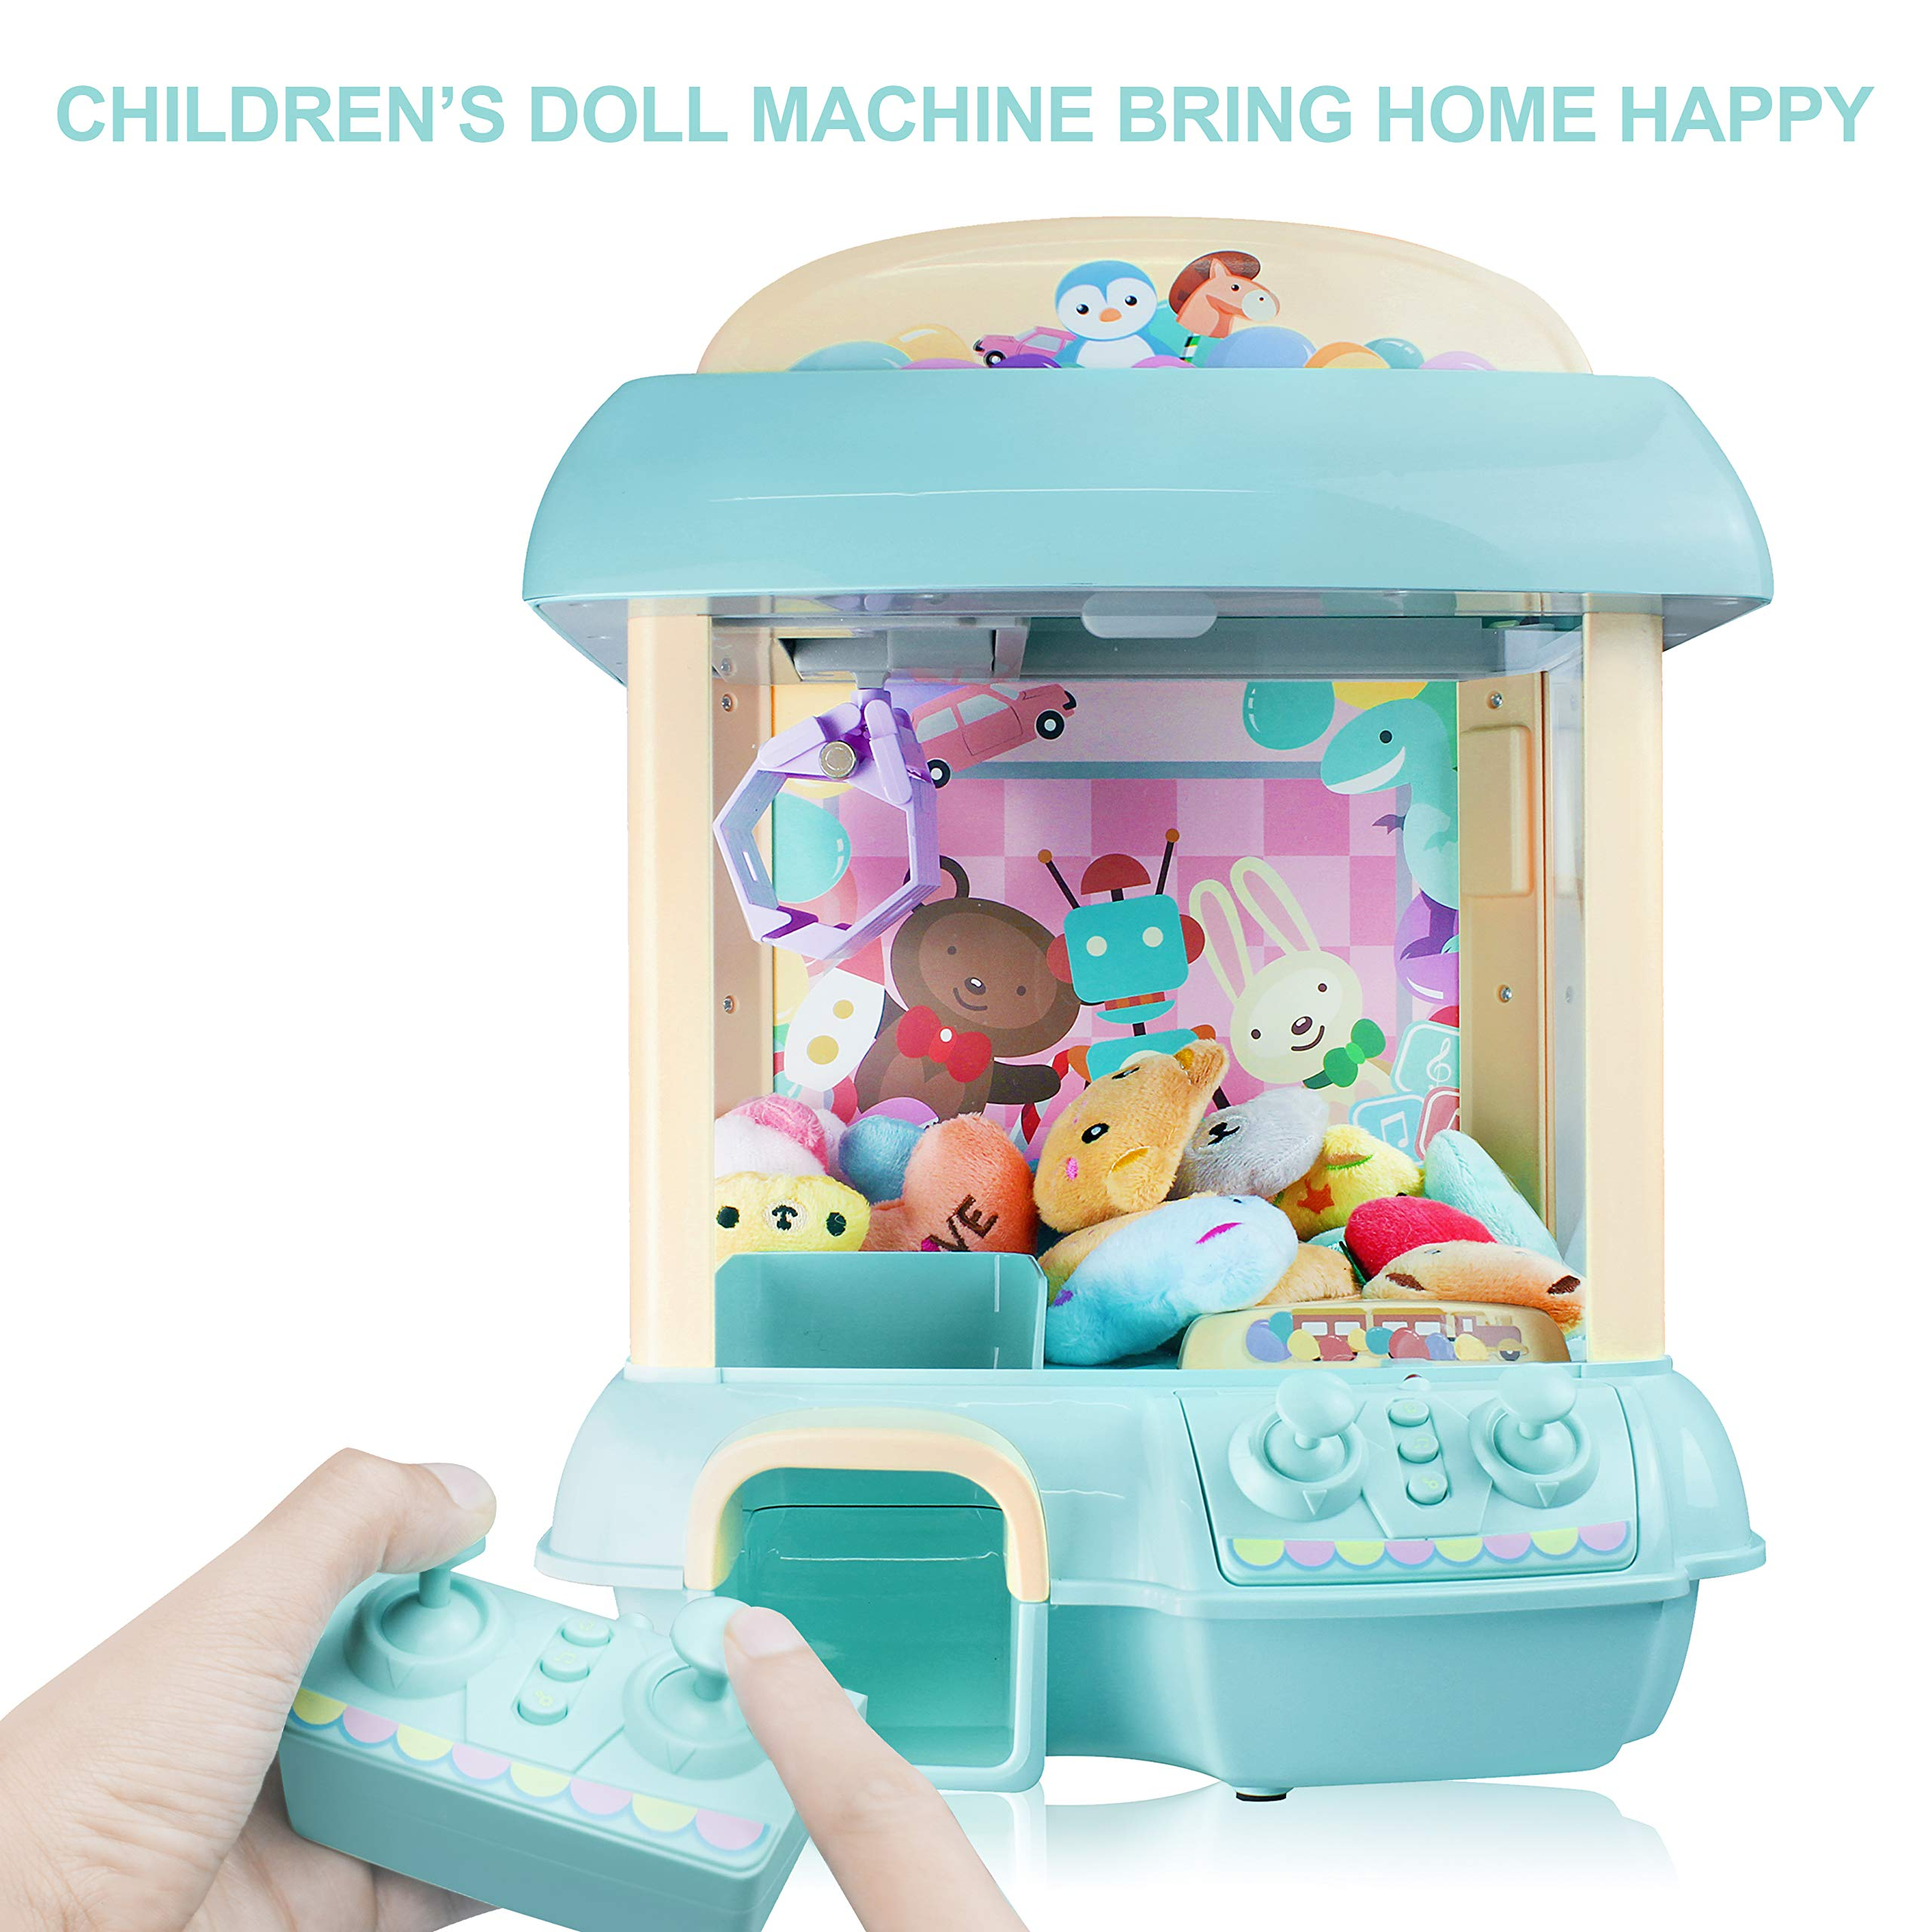 Claw Machine for Kids,Remote Control,Indoor Arcade Gams with Sounds and Lights,Funny Gift for Boys Girls (Blue)